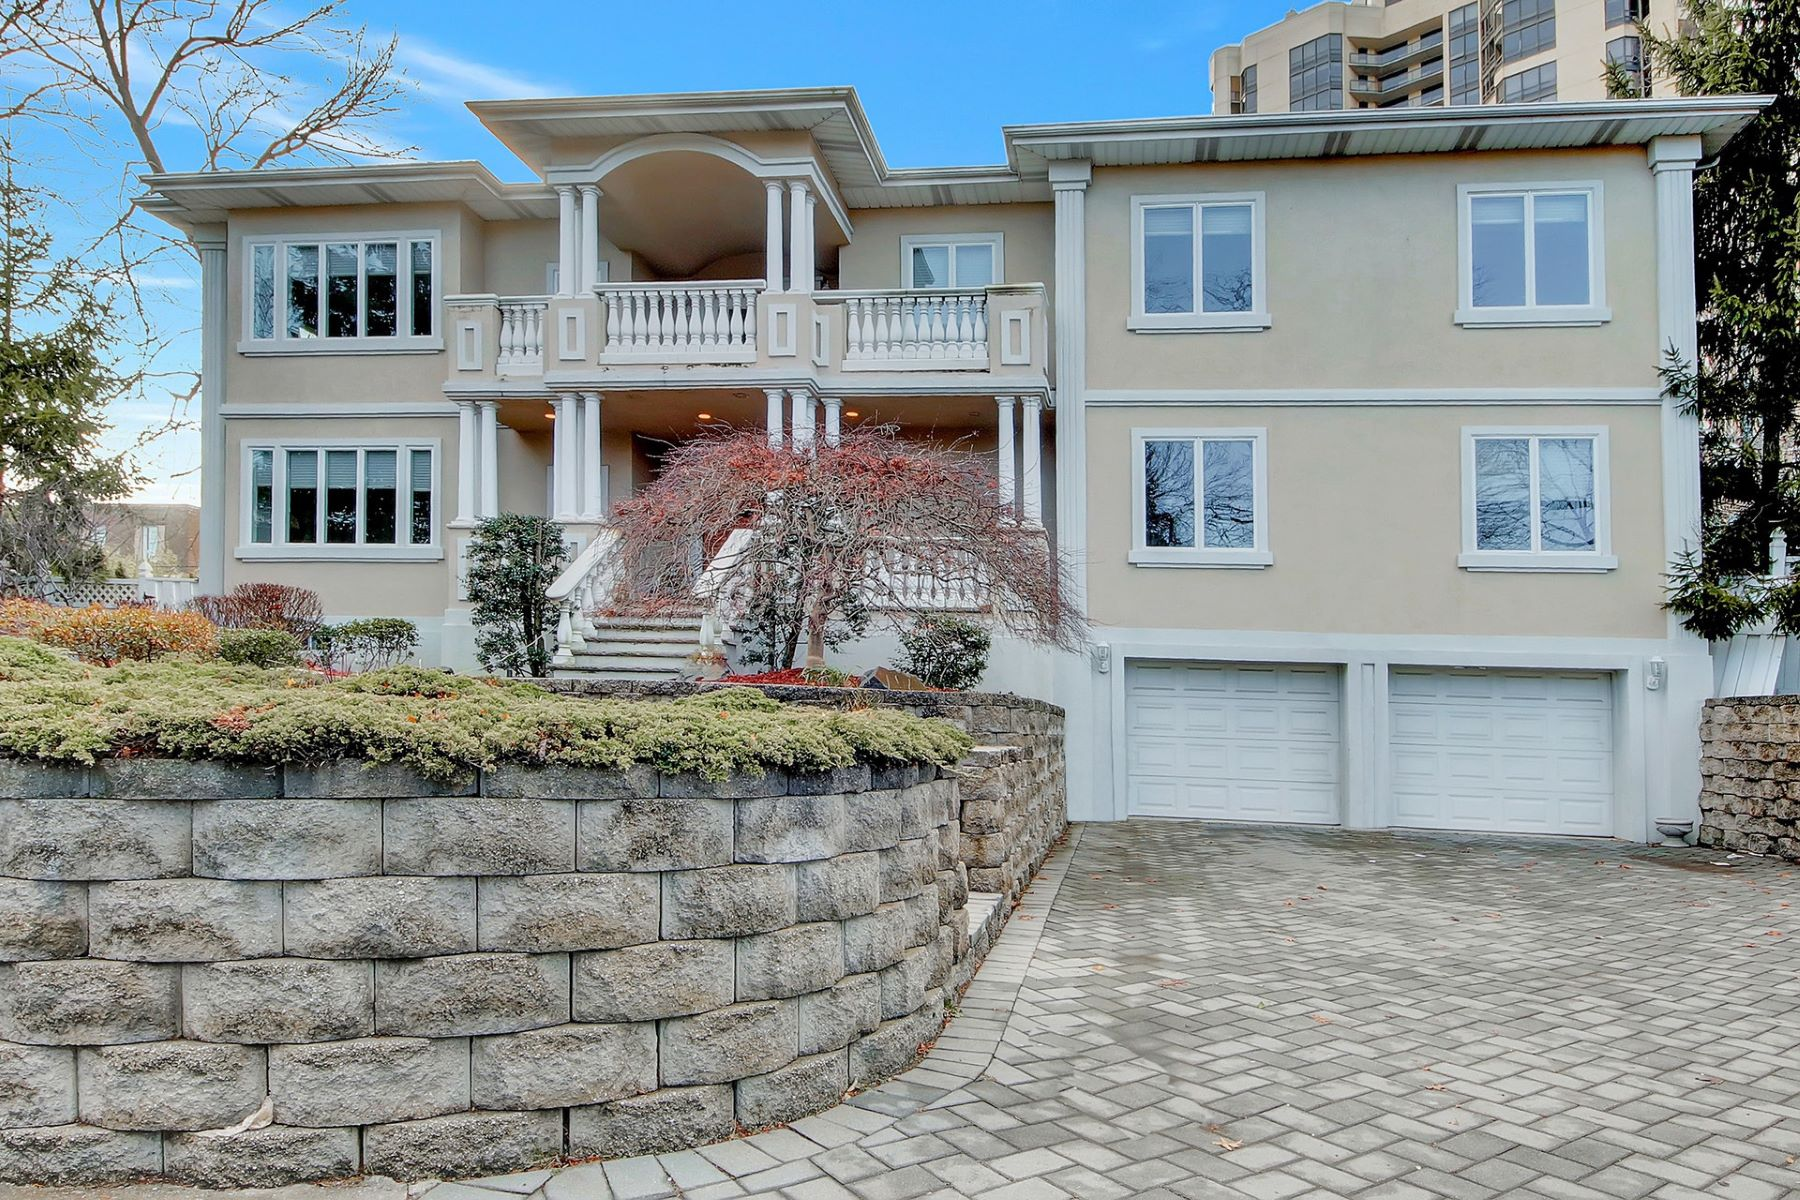 Single Family Home for Sale at Beautiful Colonial Estate 40 Route 5, Fort Lee, New Jersey 07024 United States